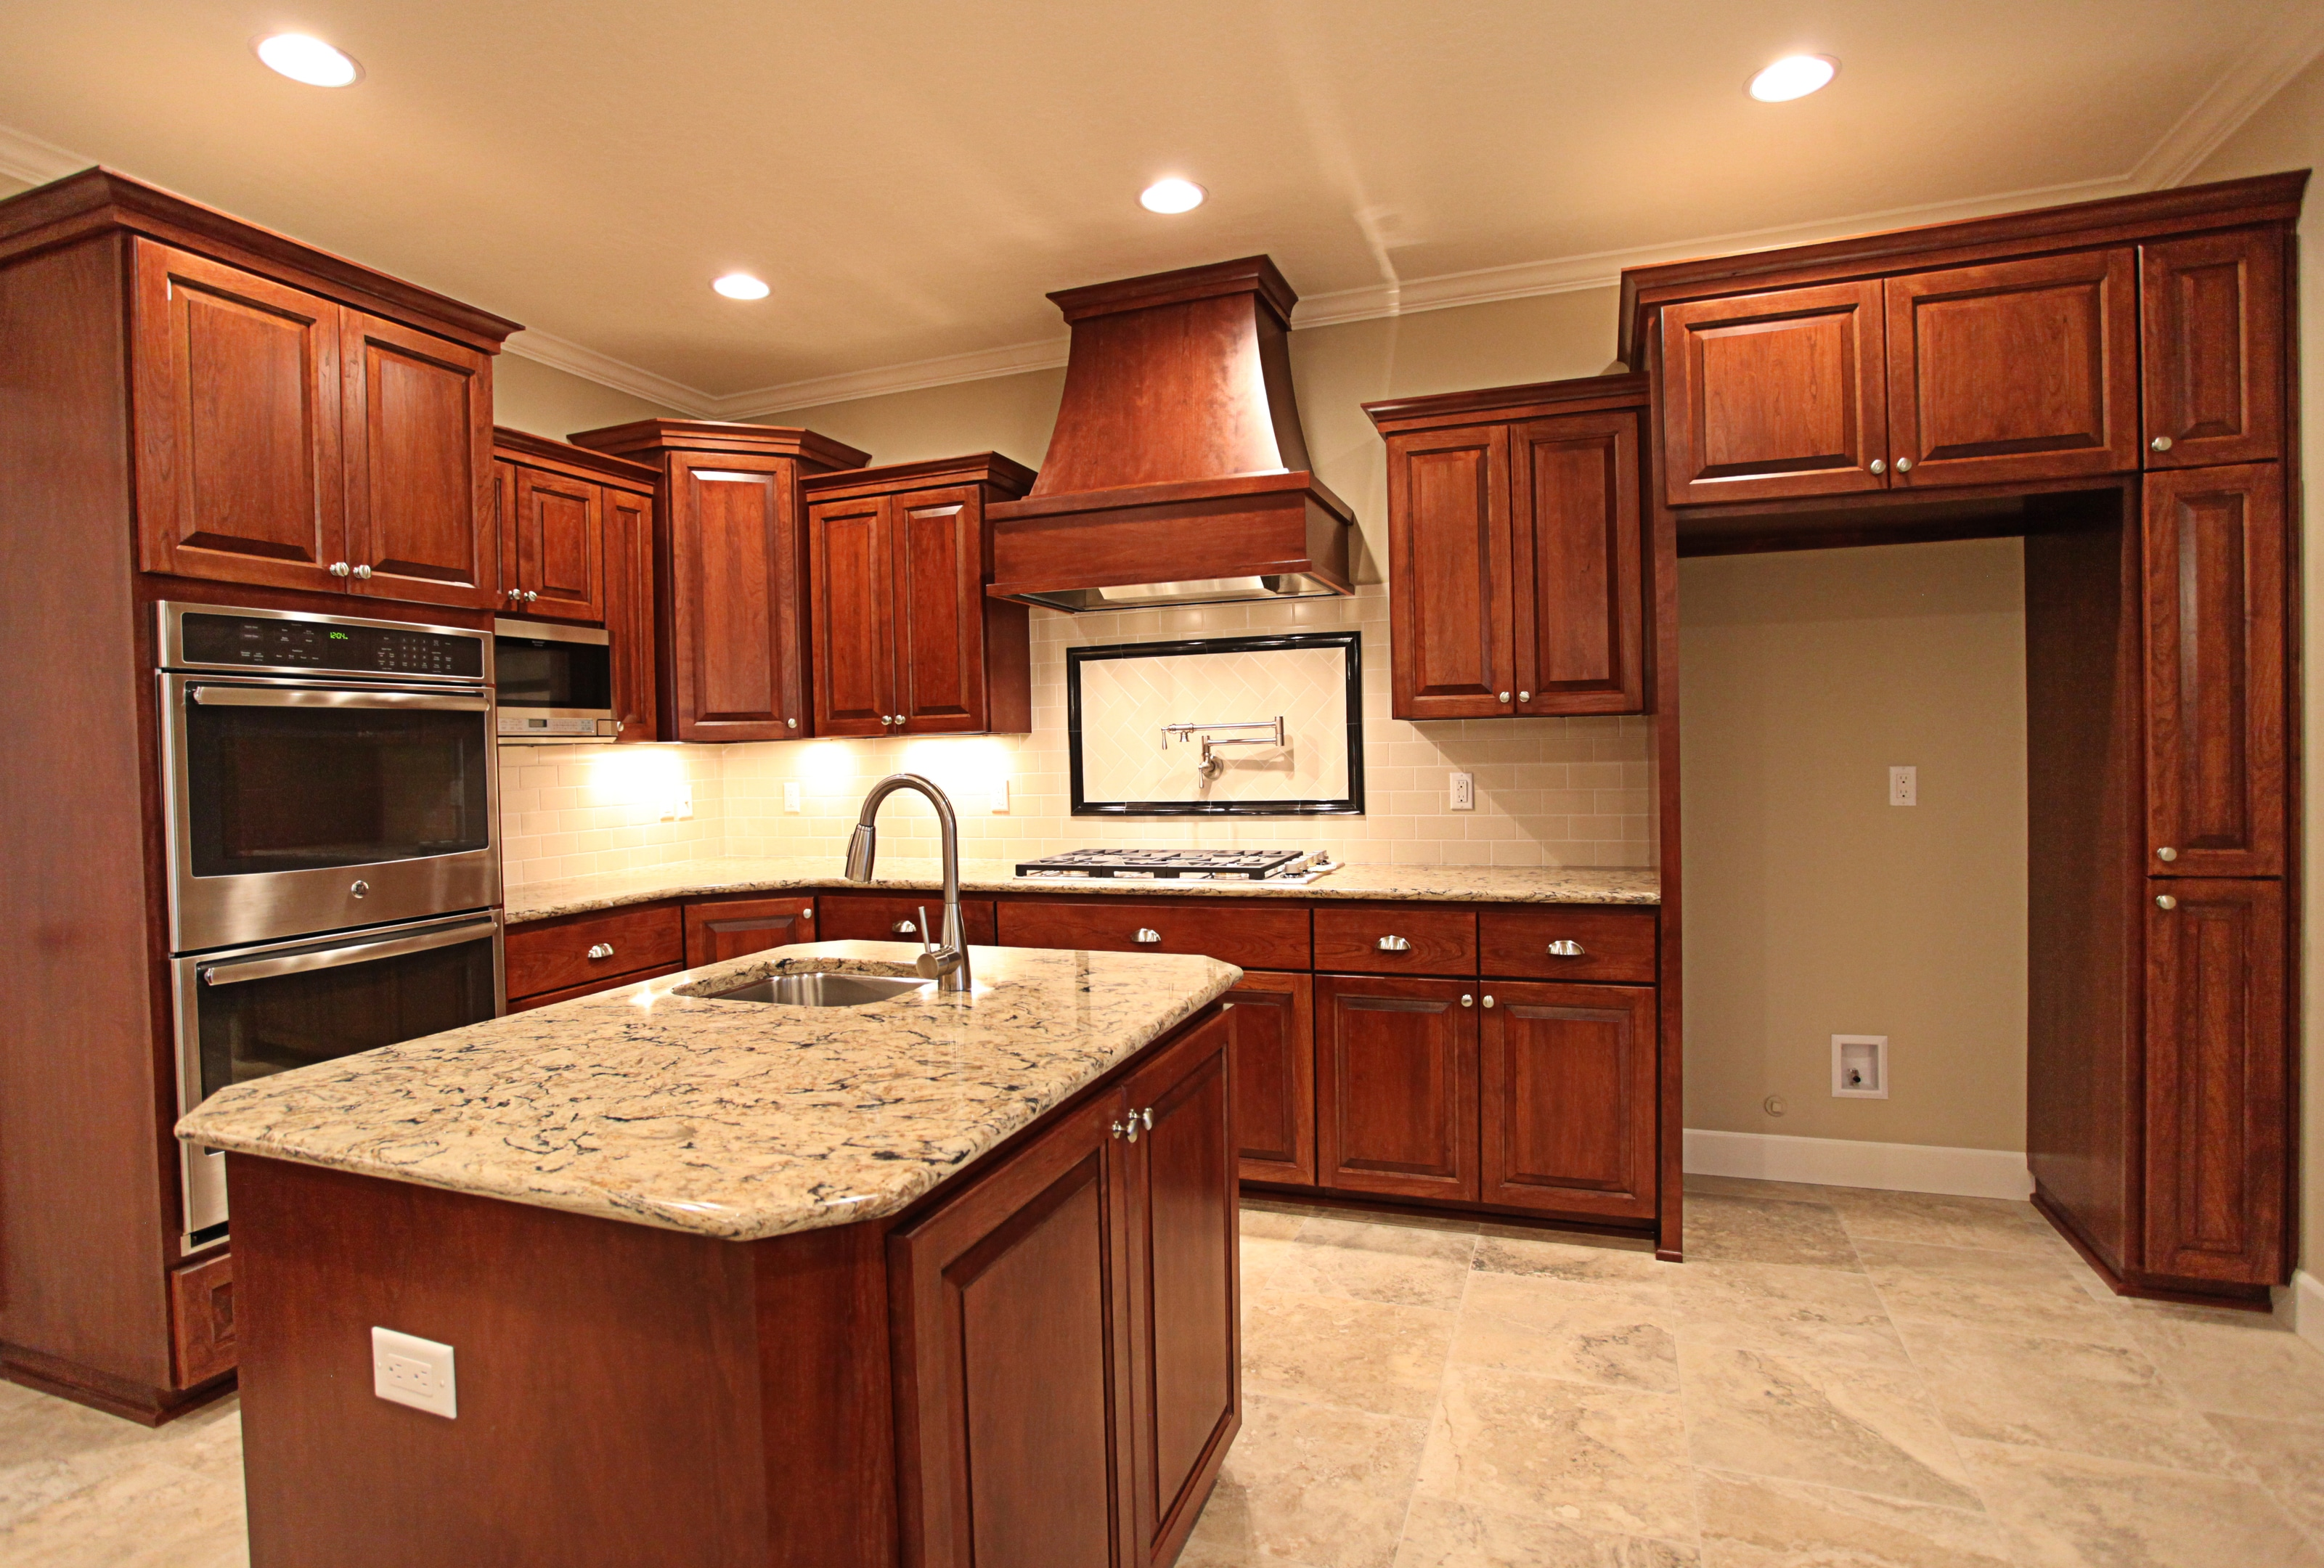 Traditional-kitchen-counter-depth-upper-wall-cabinets-stained-kitchen-cabinets